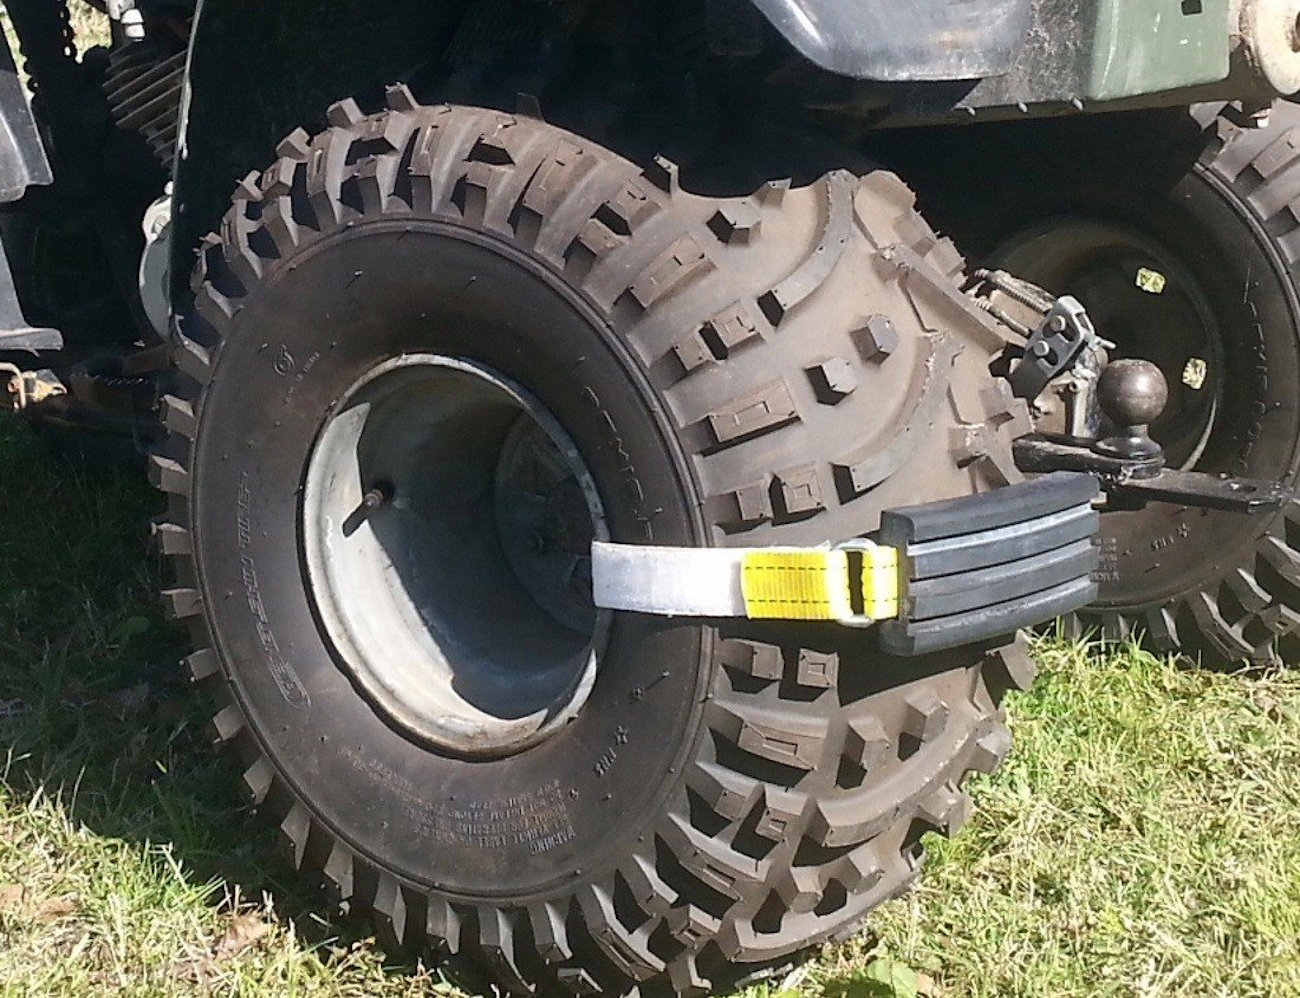 trac-grabber-the-traction-solution-for-vehicles-03